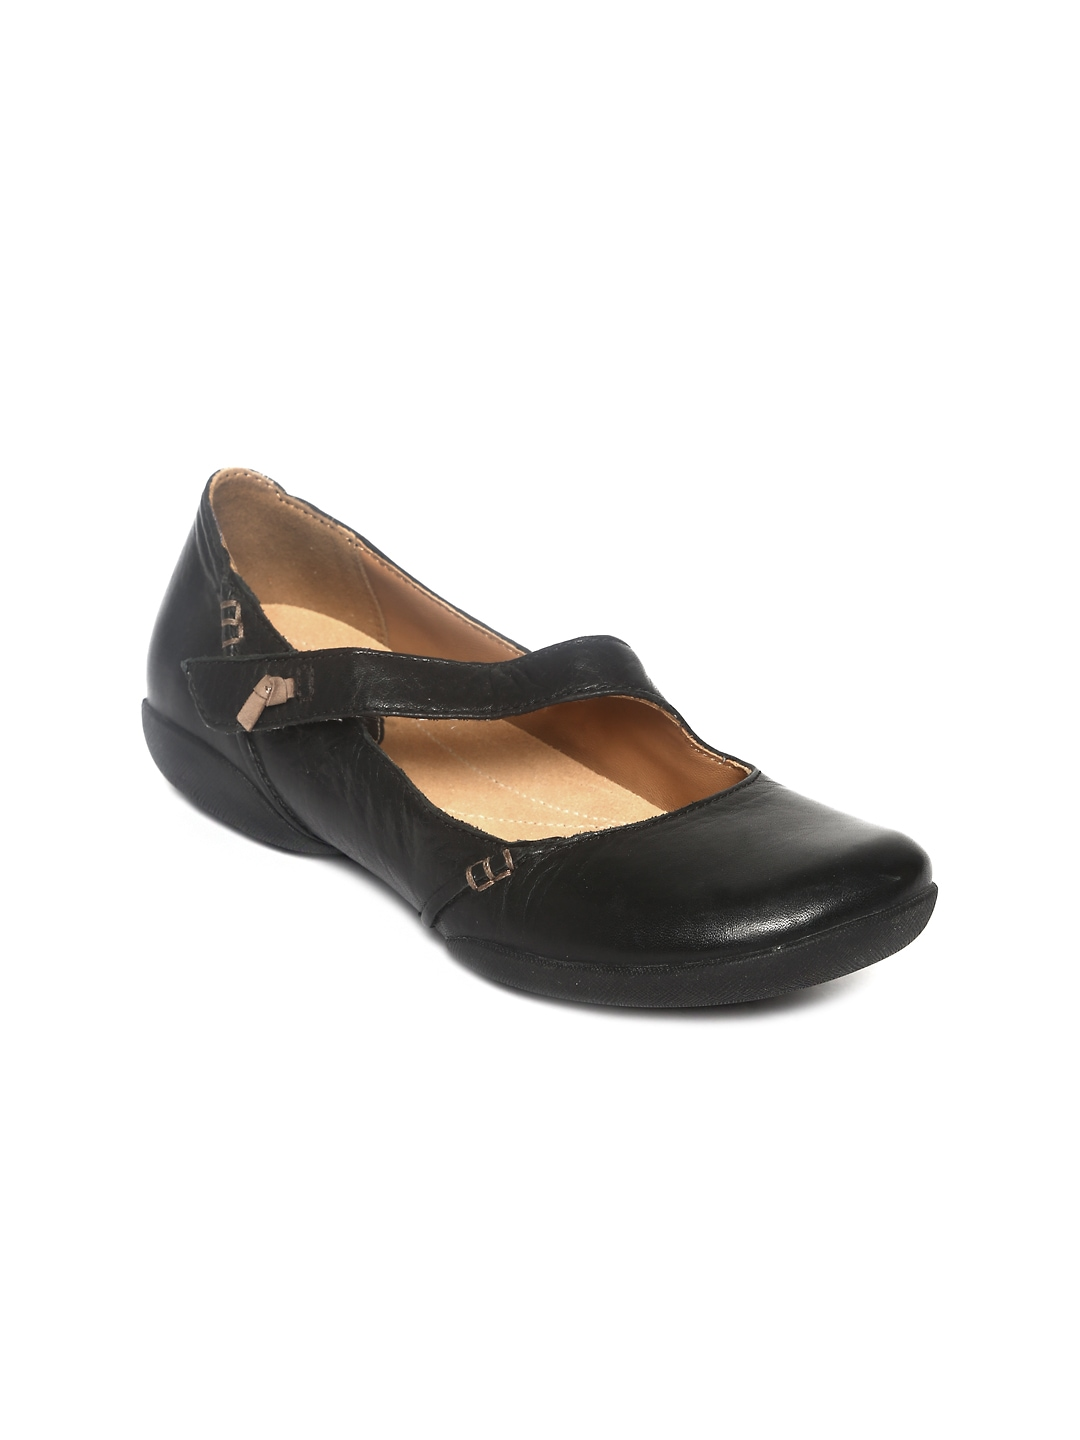 myntra clarks black leather flat shoes 382701 buy